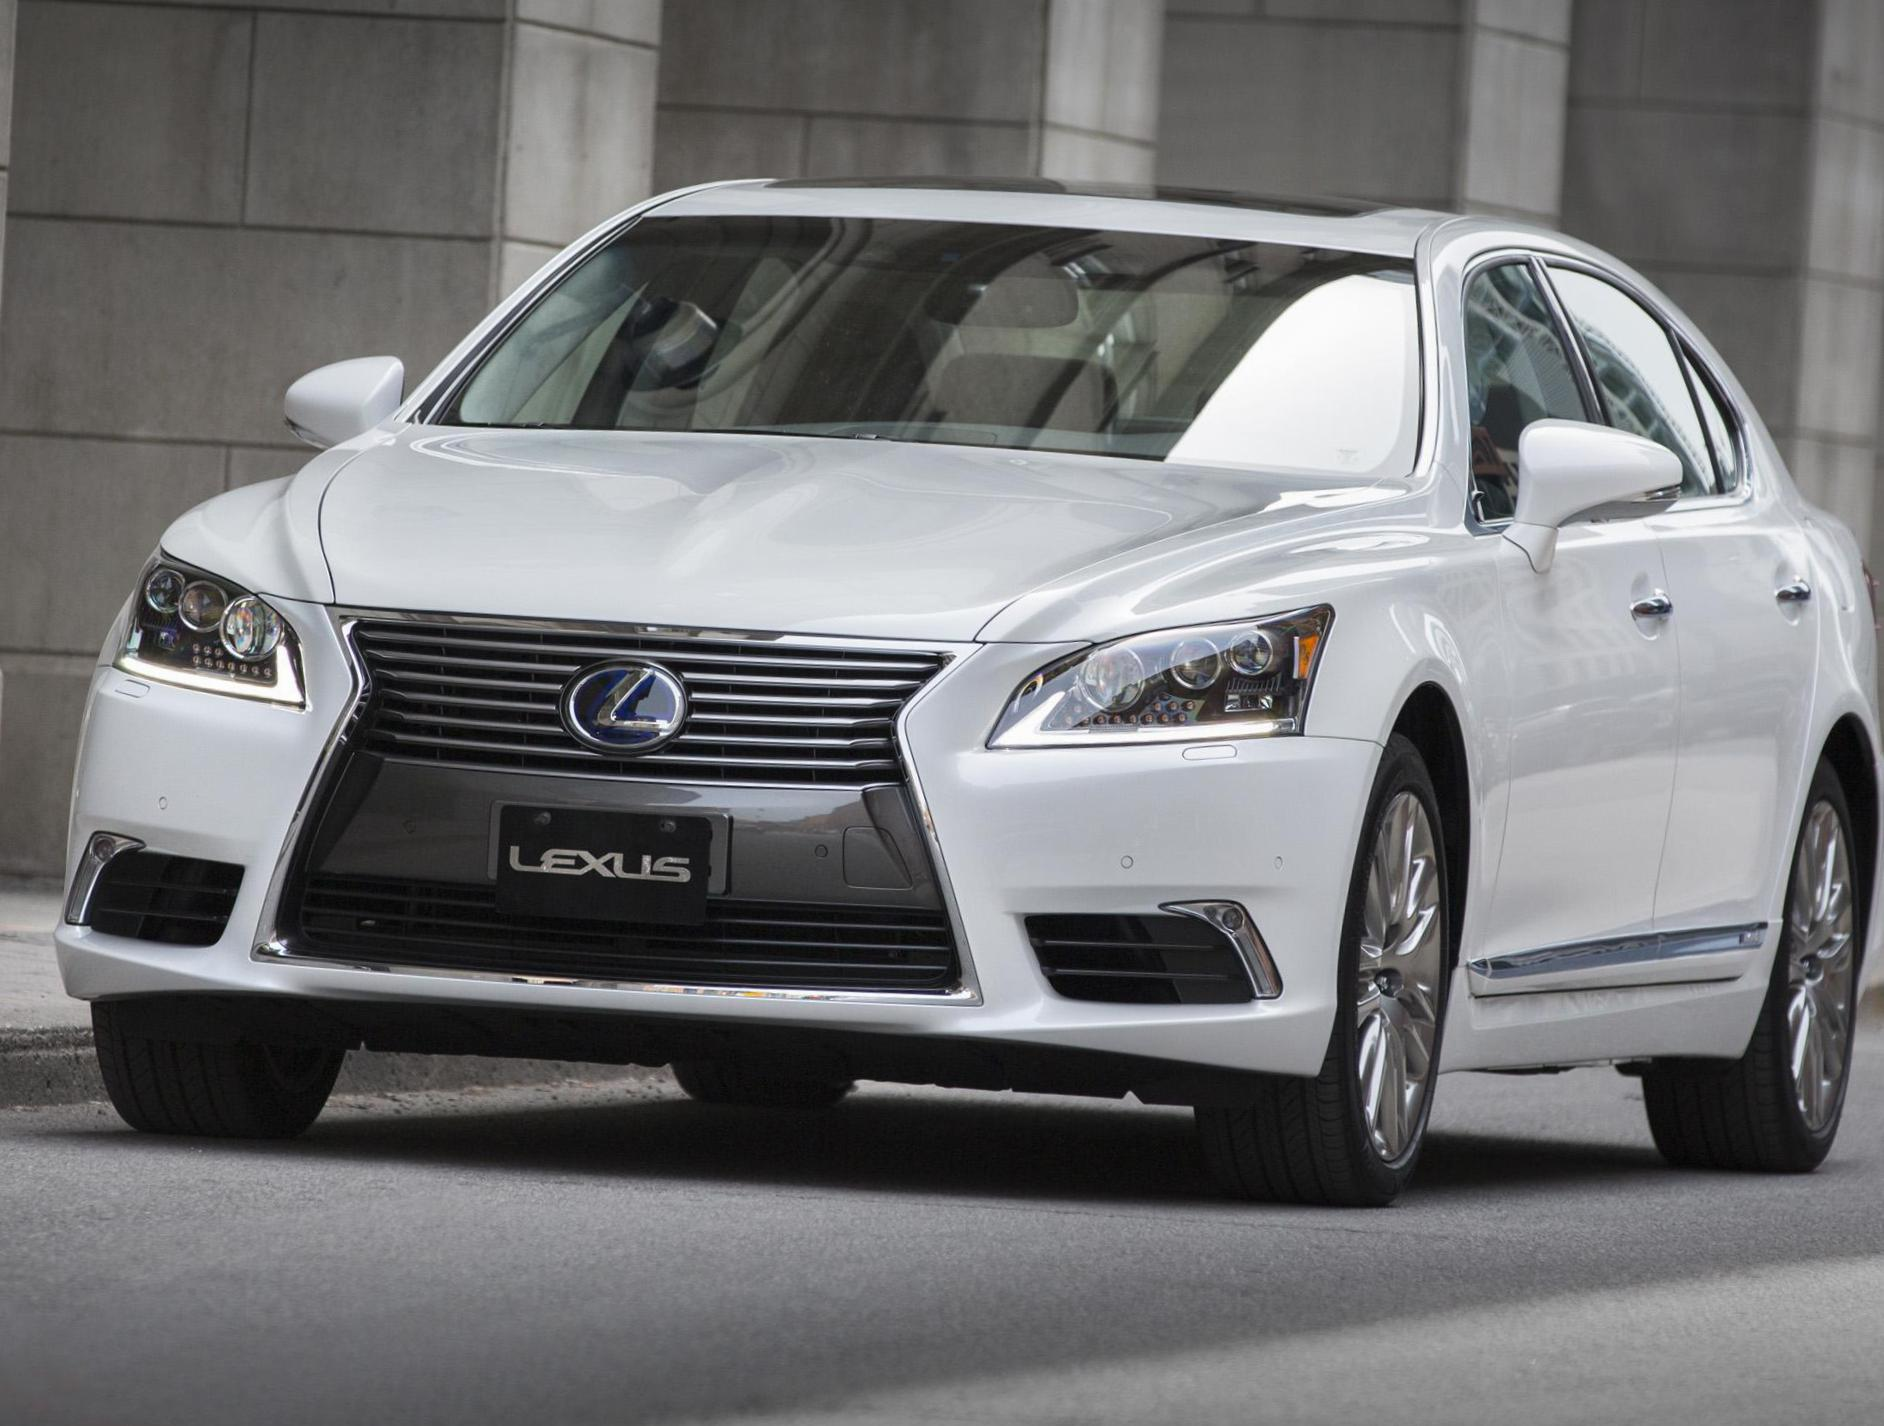 LS 600h Lexus lease sedan